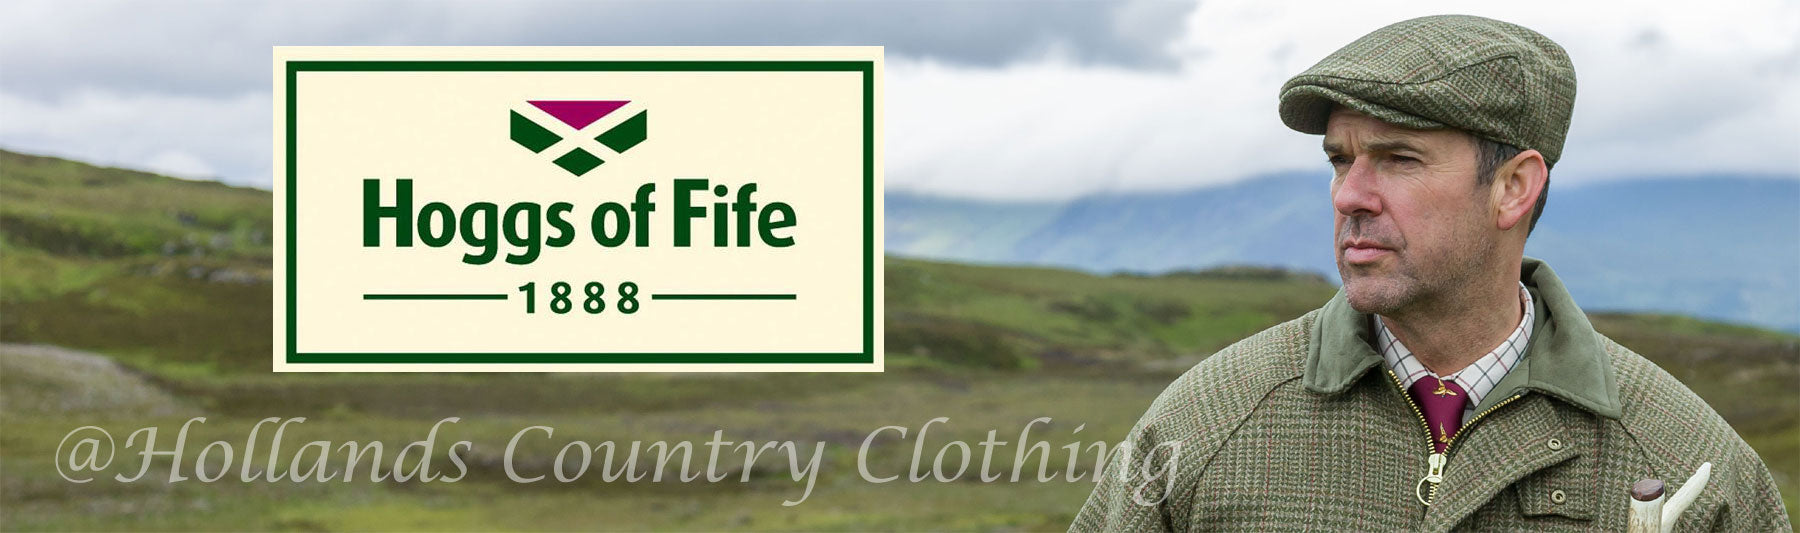 hoggs of fife clothing at hollands country clotihing